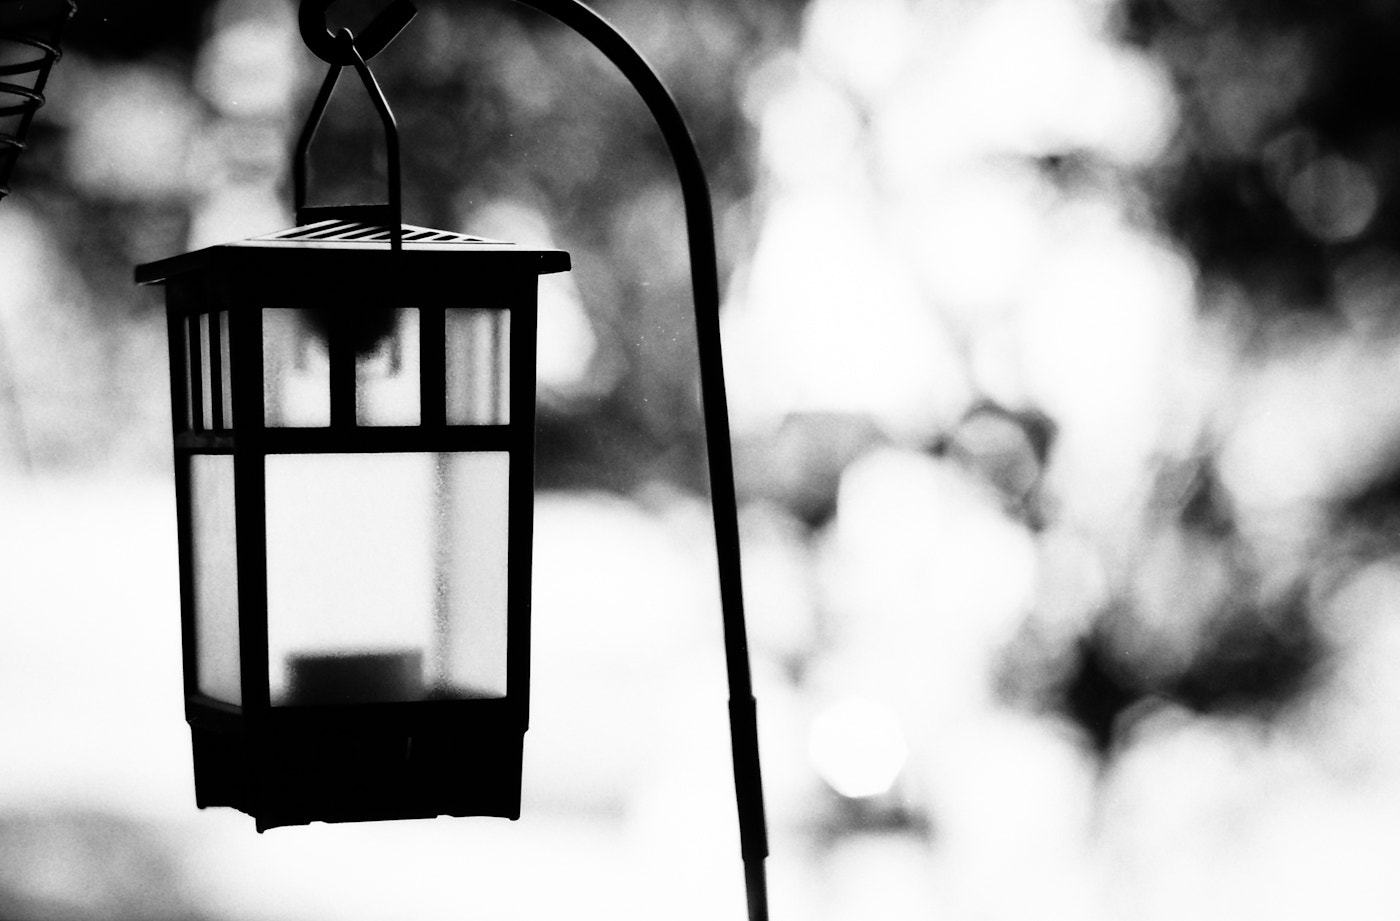 Photograph The Lantern by Mark Prince on 500px